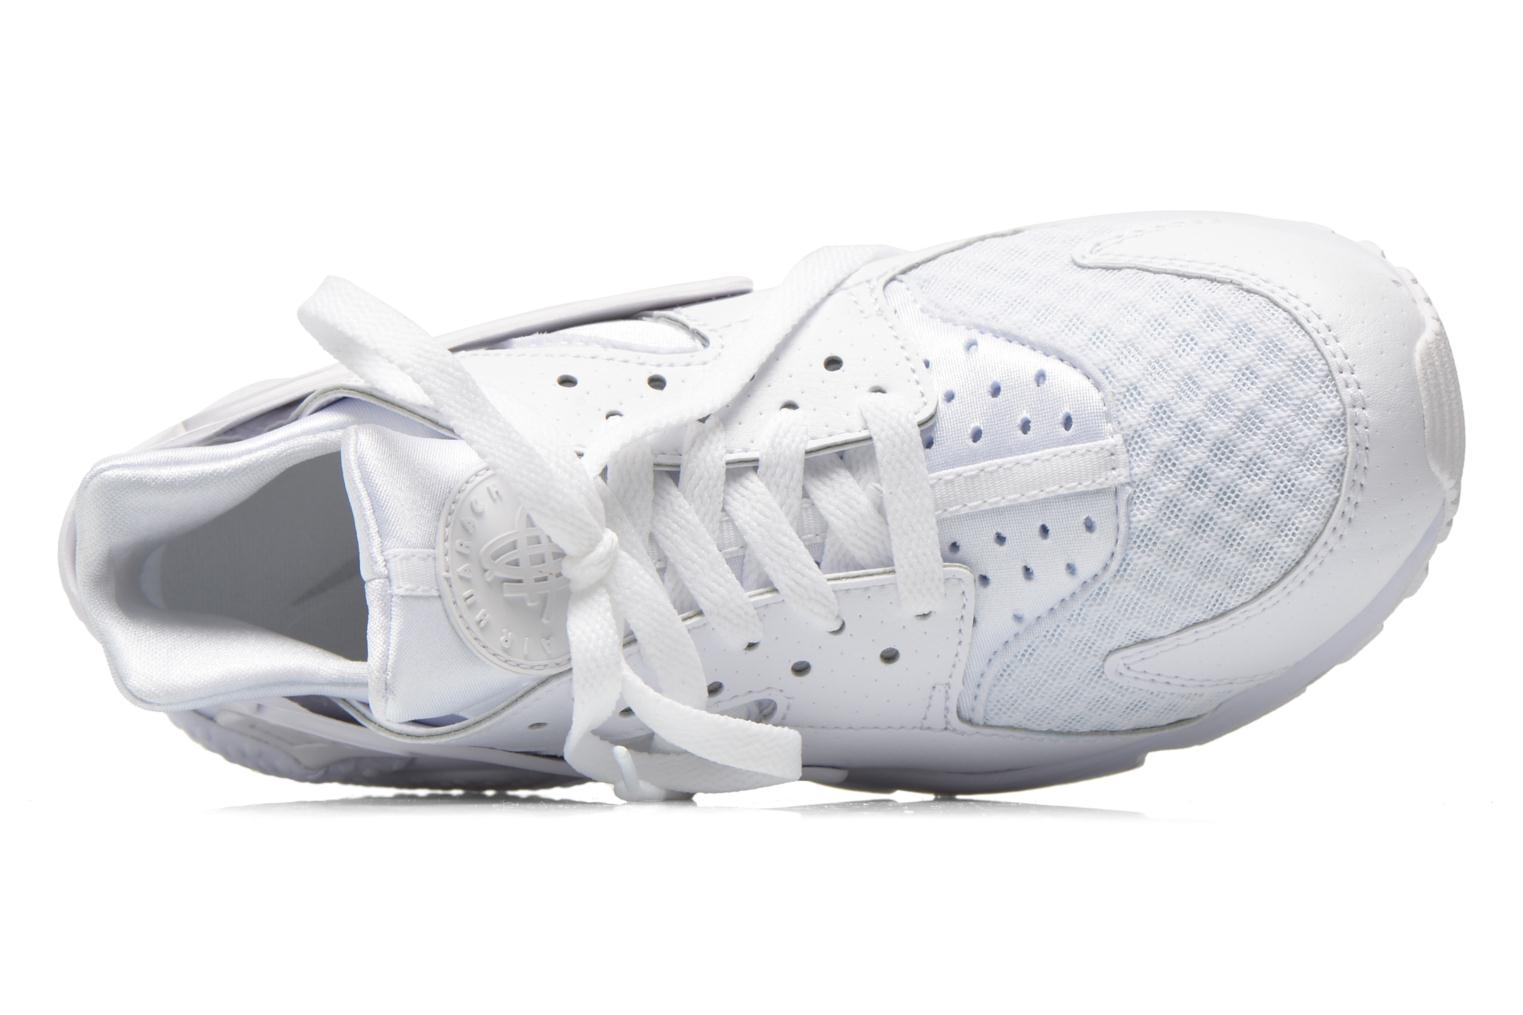 Nike Air Huarache White/White-Pure Platinum